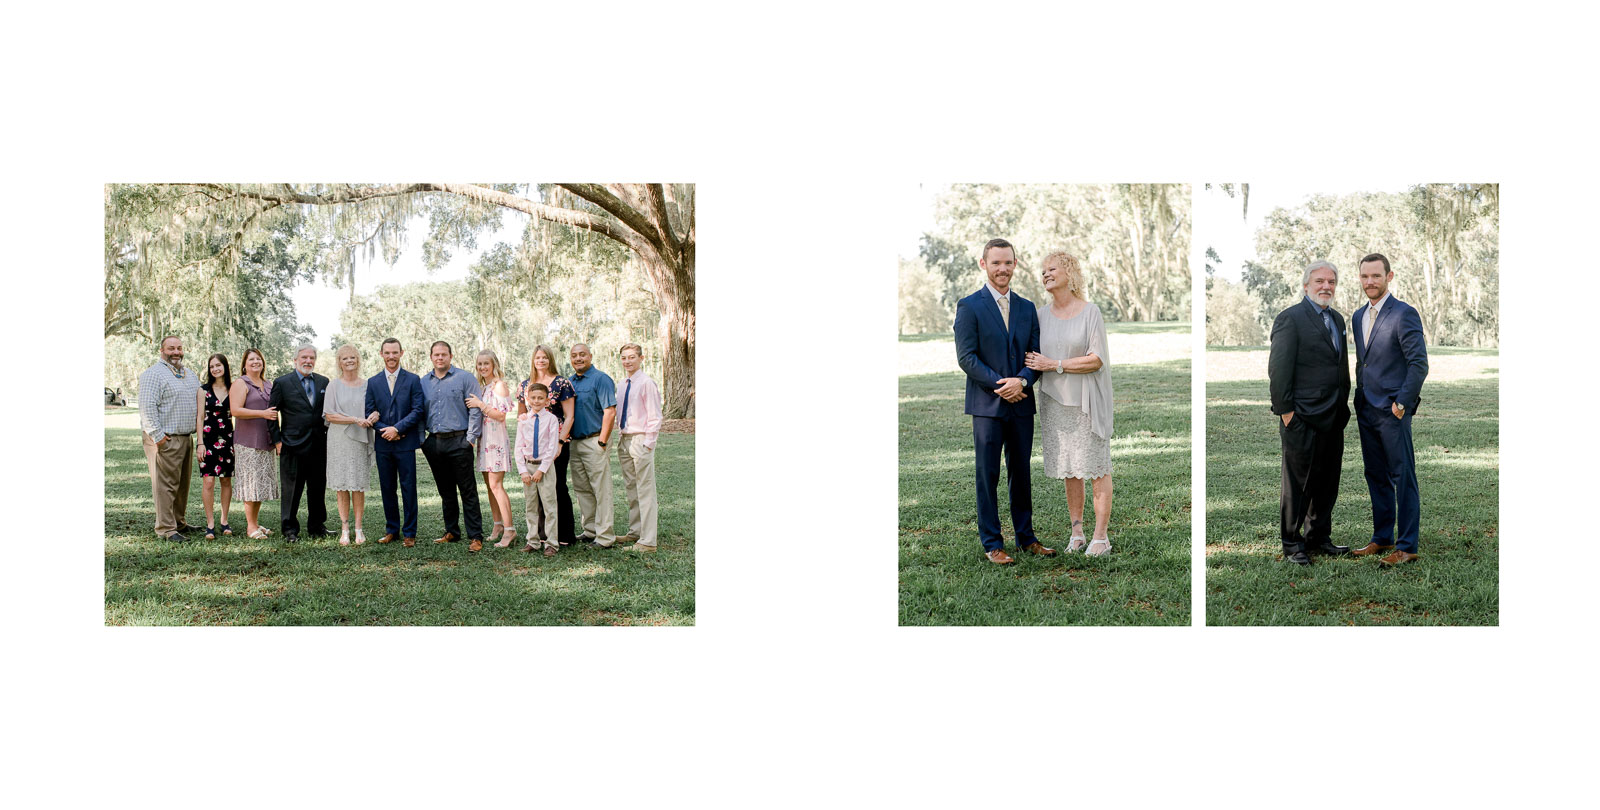 Carography-Studios-the-Lange-Farm-Weddings-Stone-Bridge-Events-Tampa-FL-12.jpg